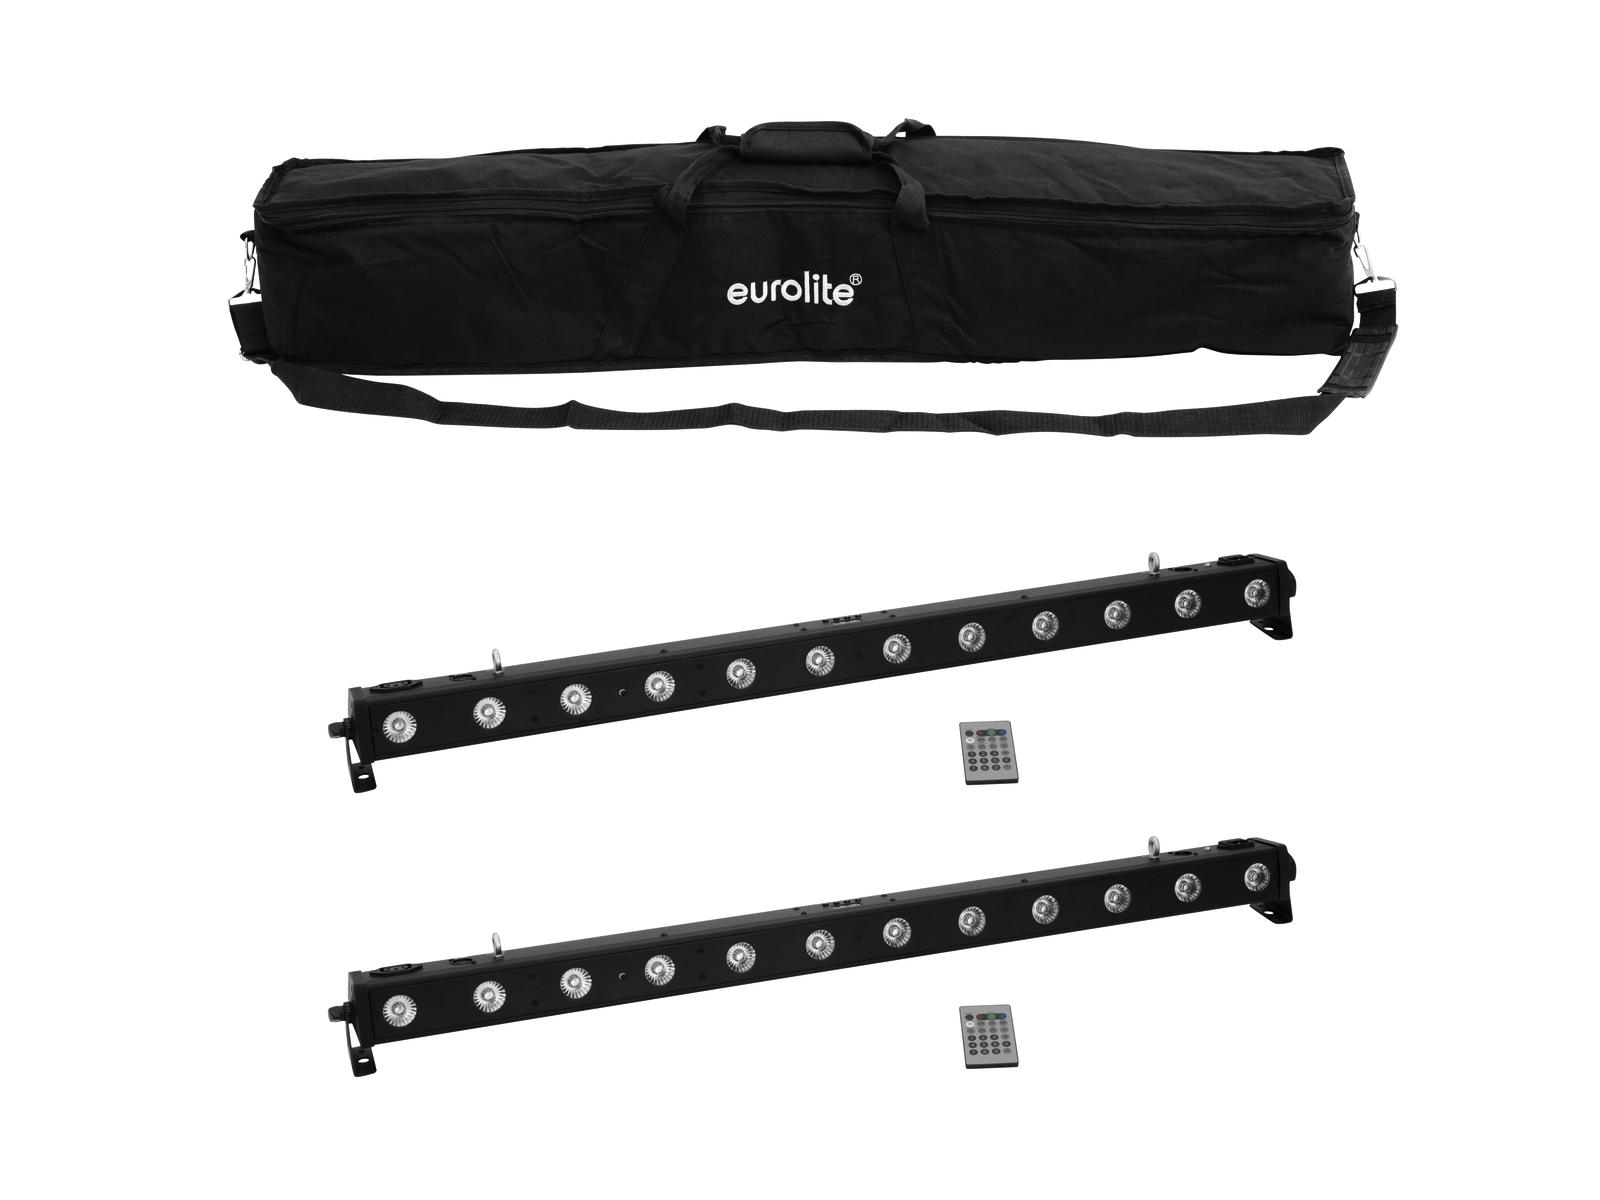 EUROLITE Set 2x LED BAR-1250 RGB+UV + Caso